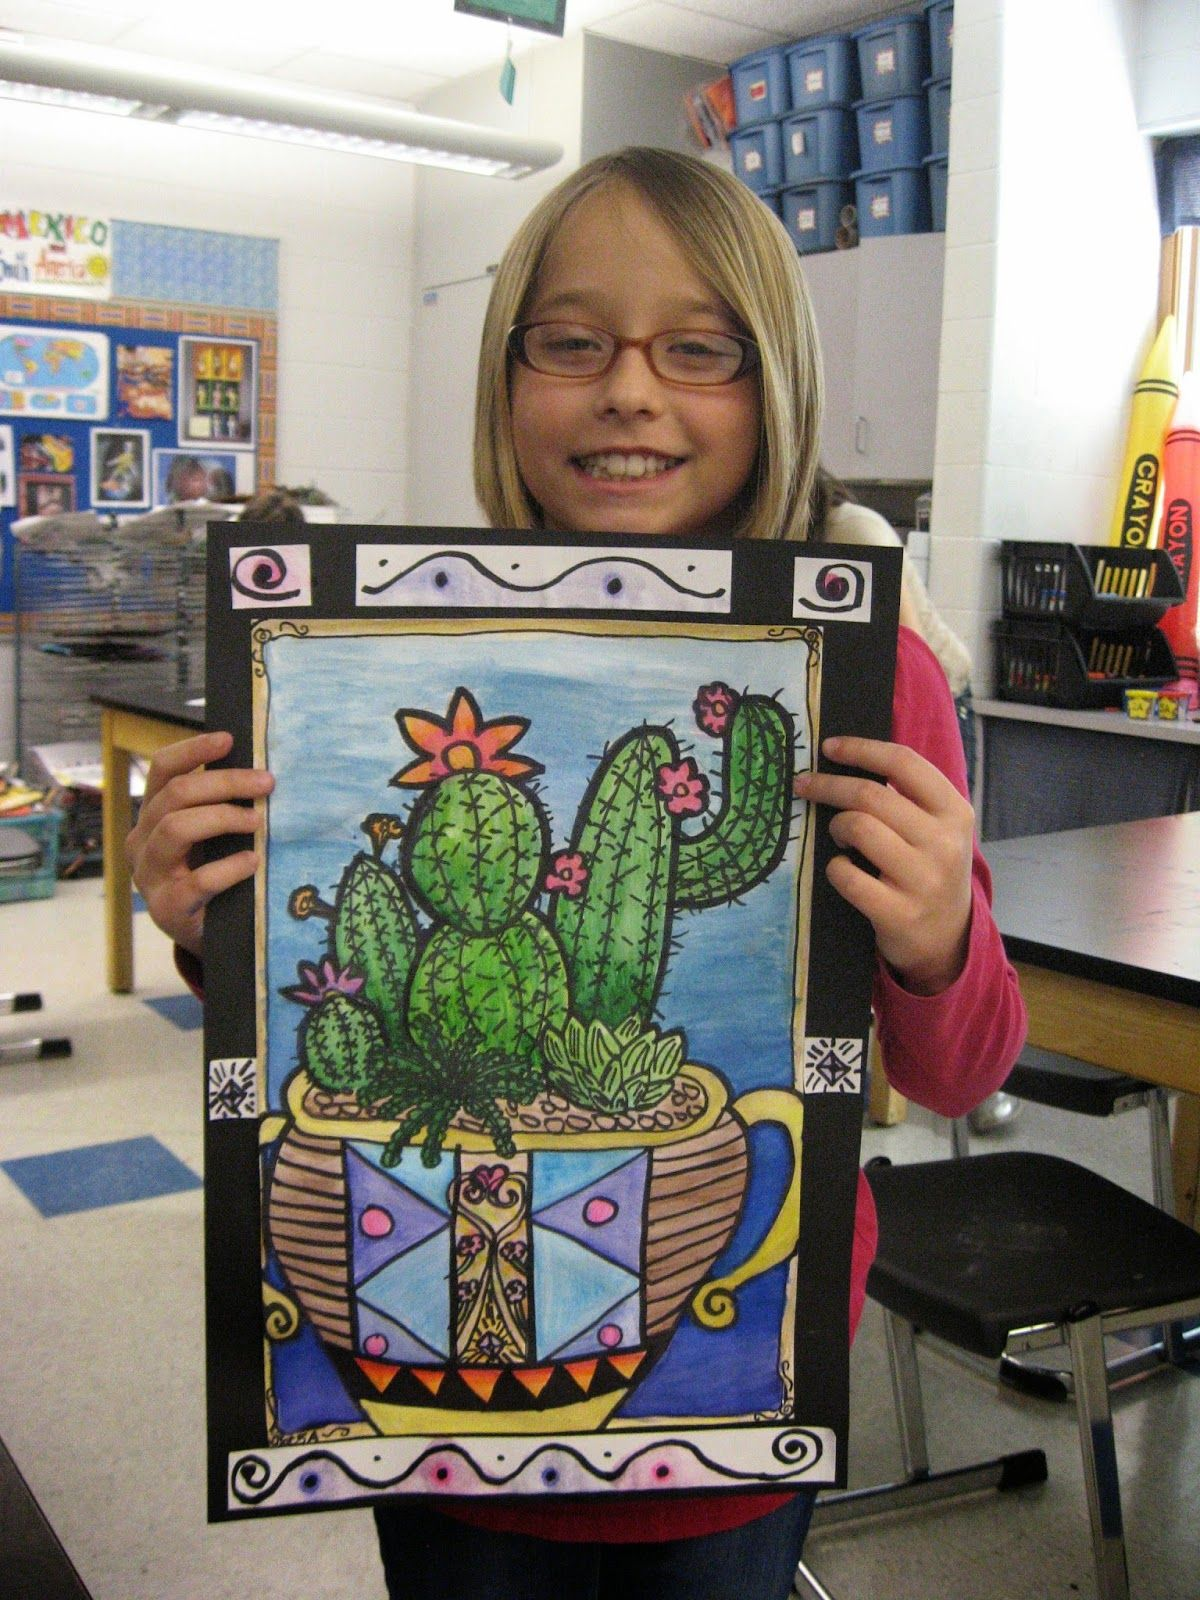 5th Grade Cacti Value Blending Watercolor Pattern